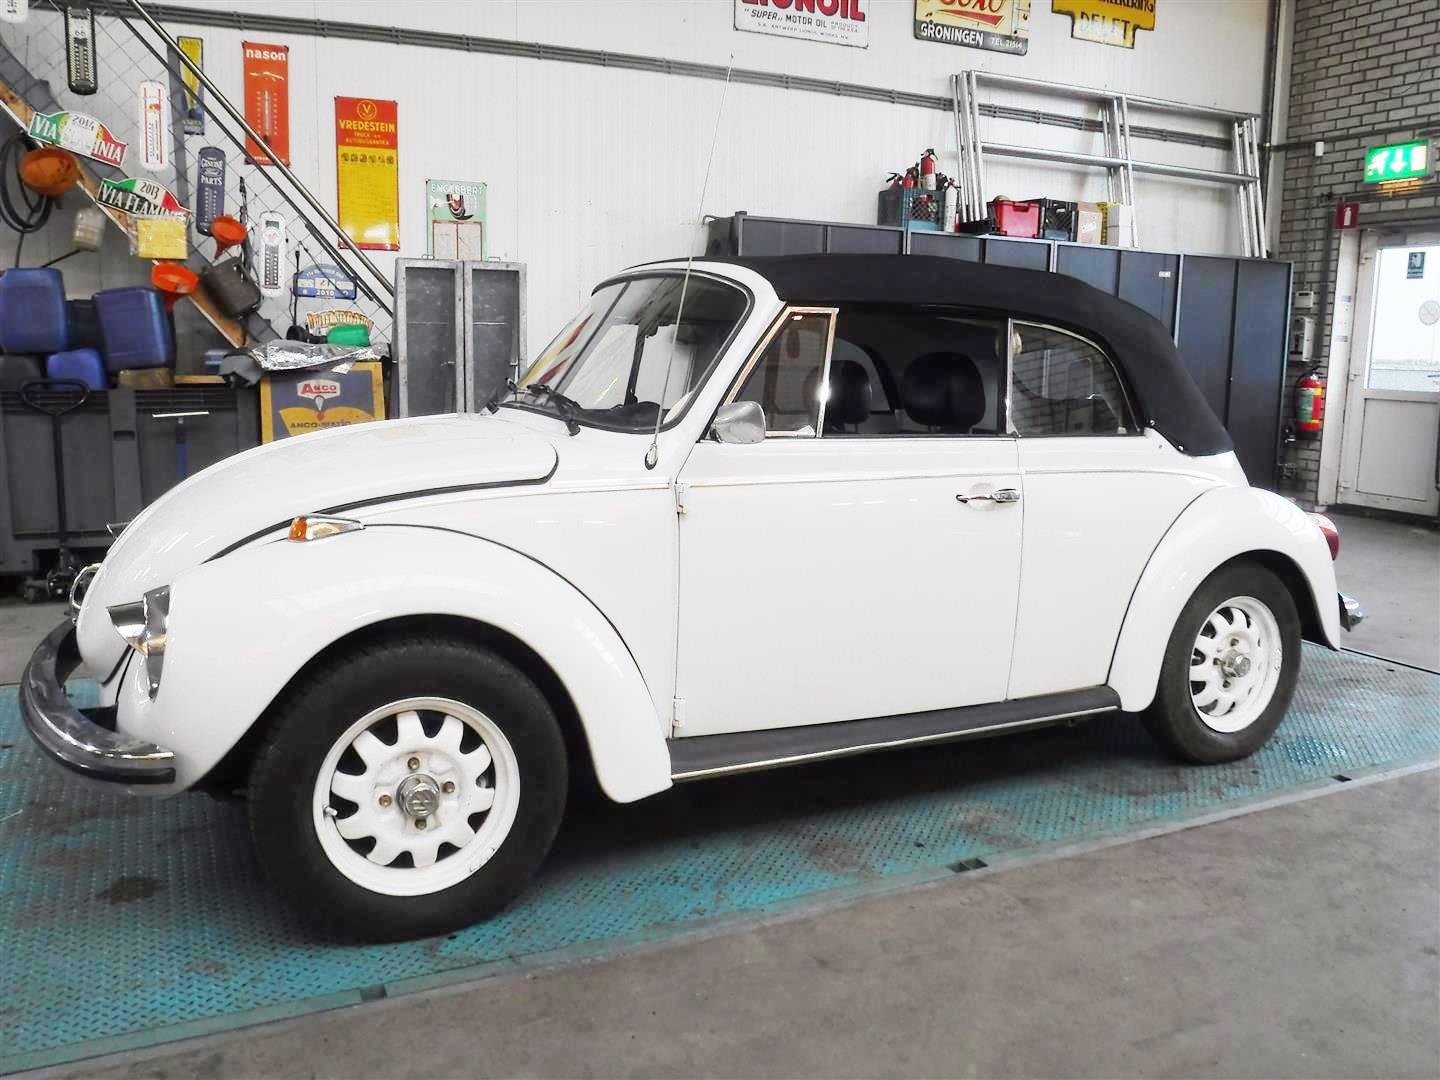 Volkswagen 1303 S convertible 1973 (perfect!) For Sale (picture 2 of 6)